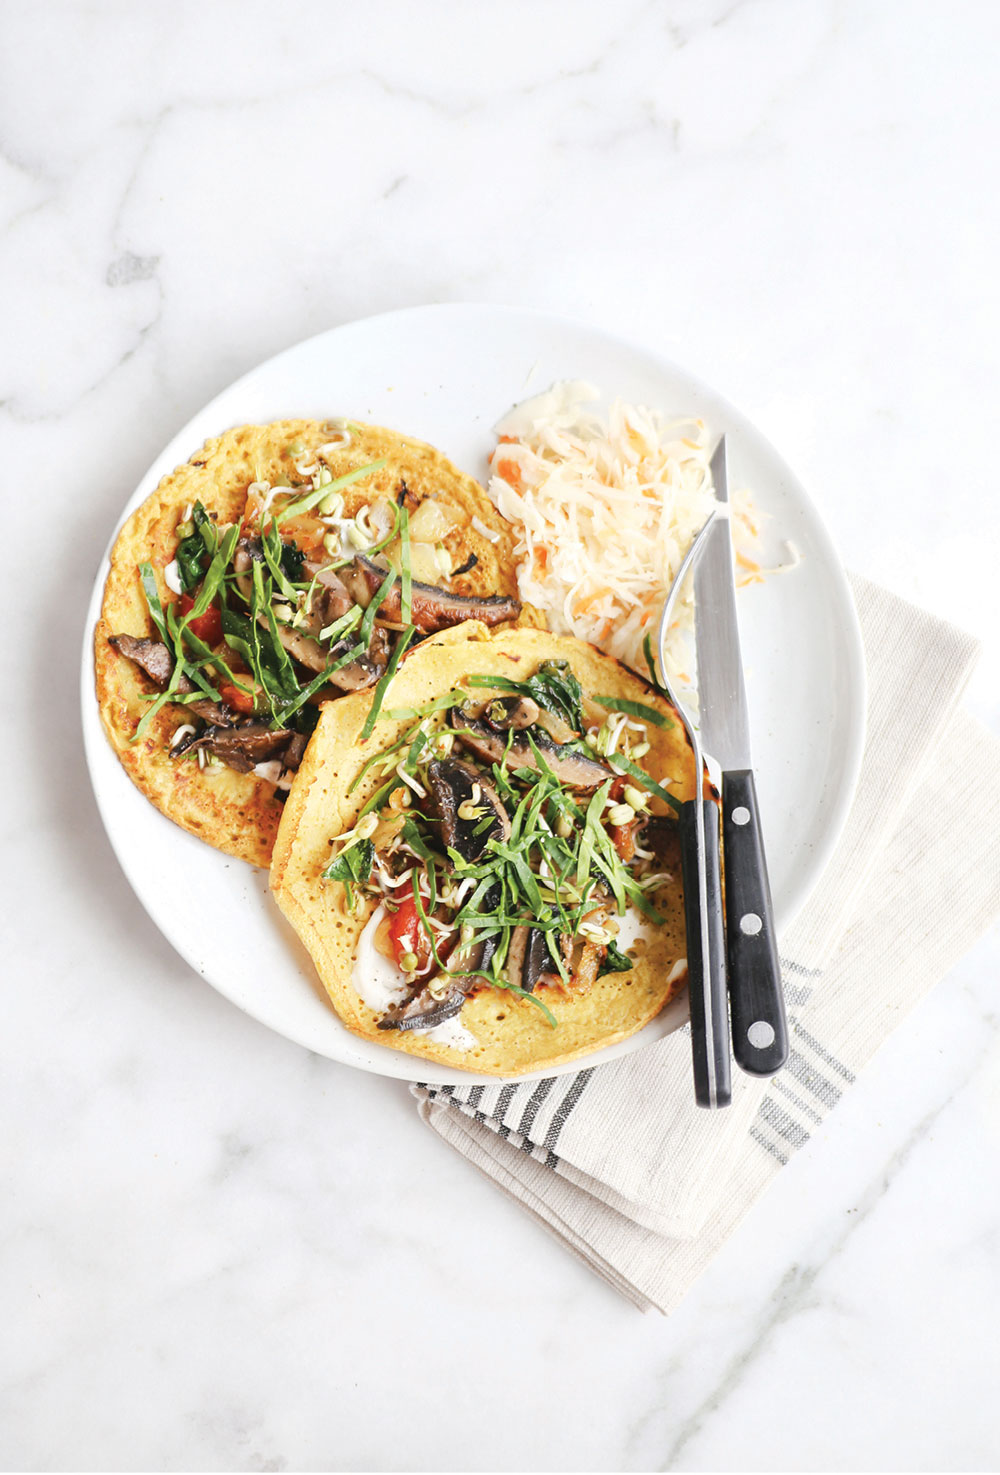 Pure-Ella-Socca-Vegan-Gluten-free-Chickpea-Crepes-with-Portabellos3